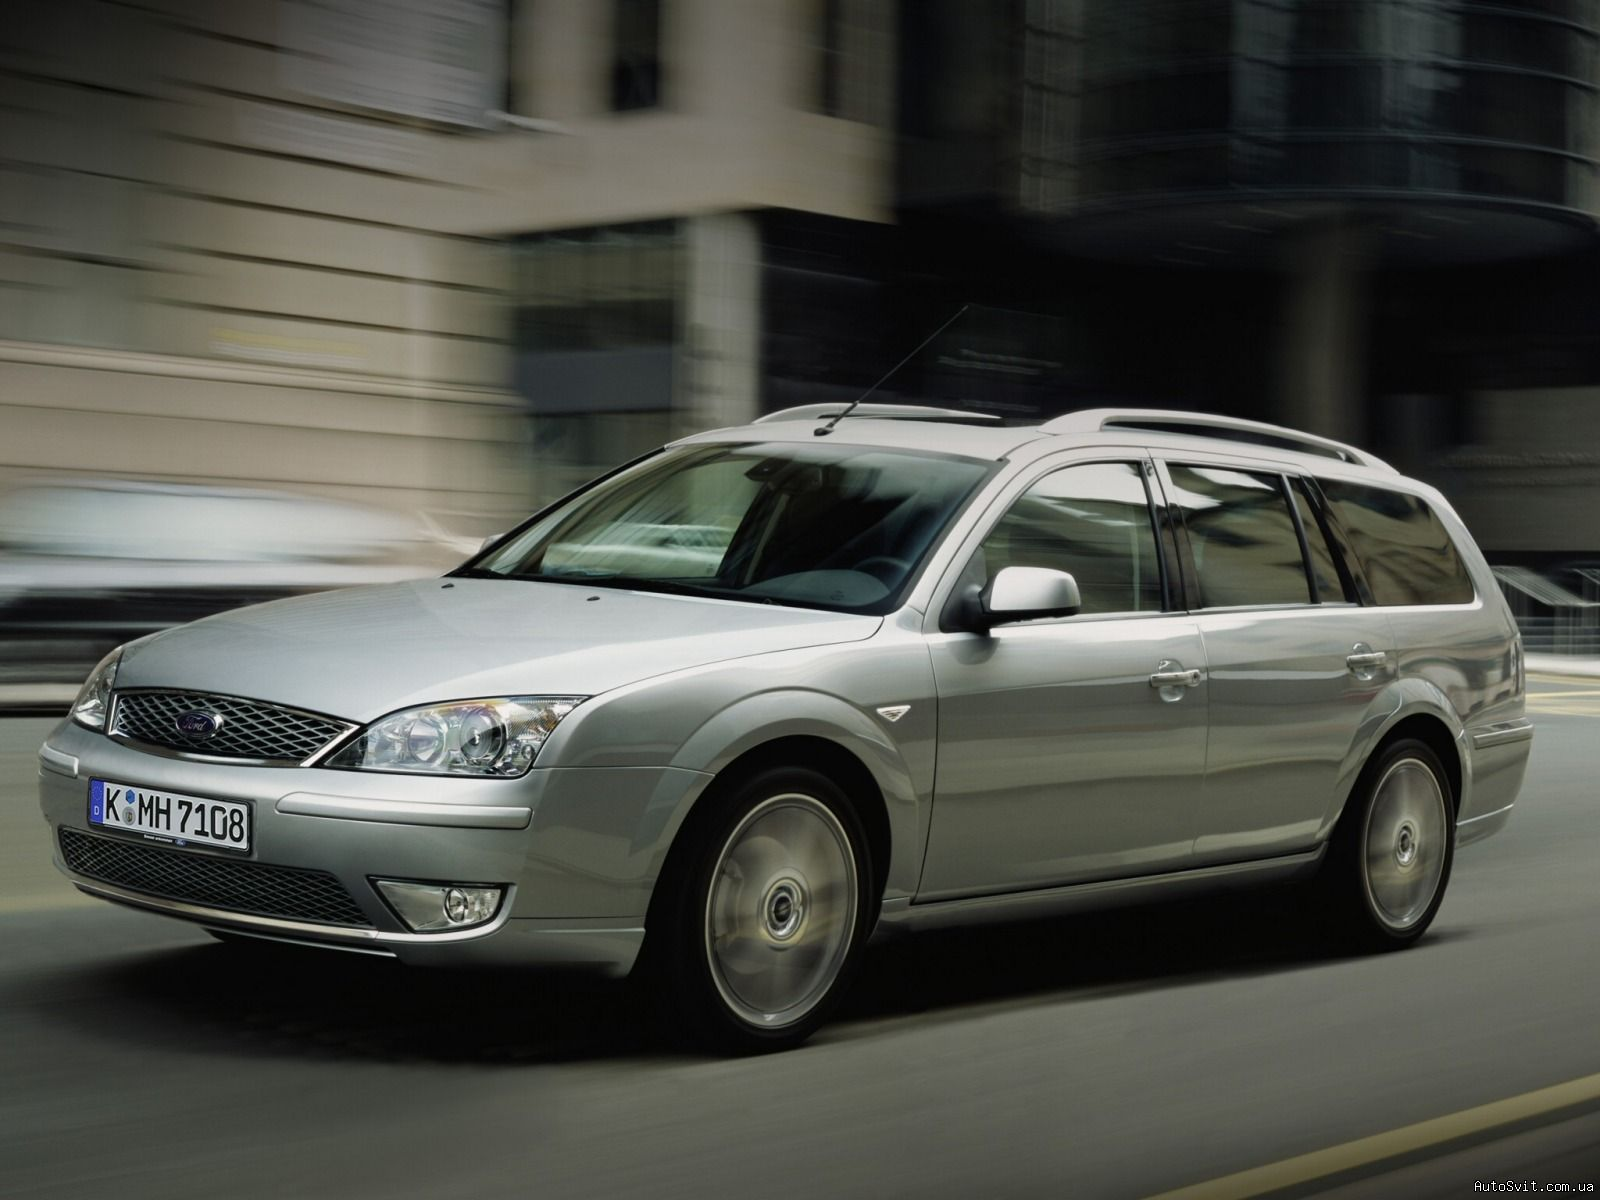 Ford Mondeo 2.0 2005 photo - 7